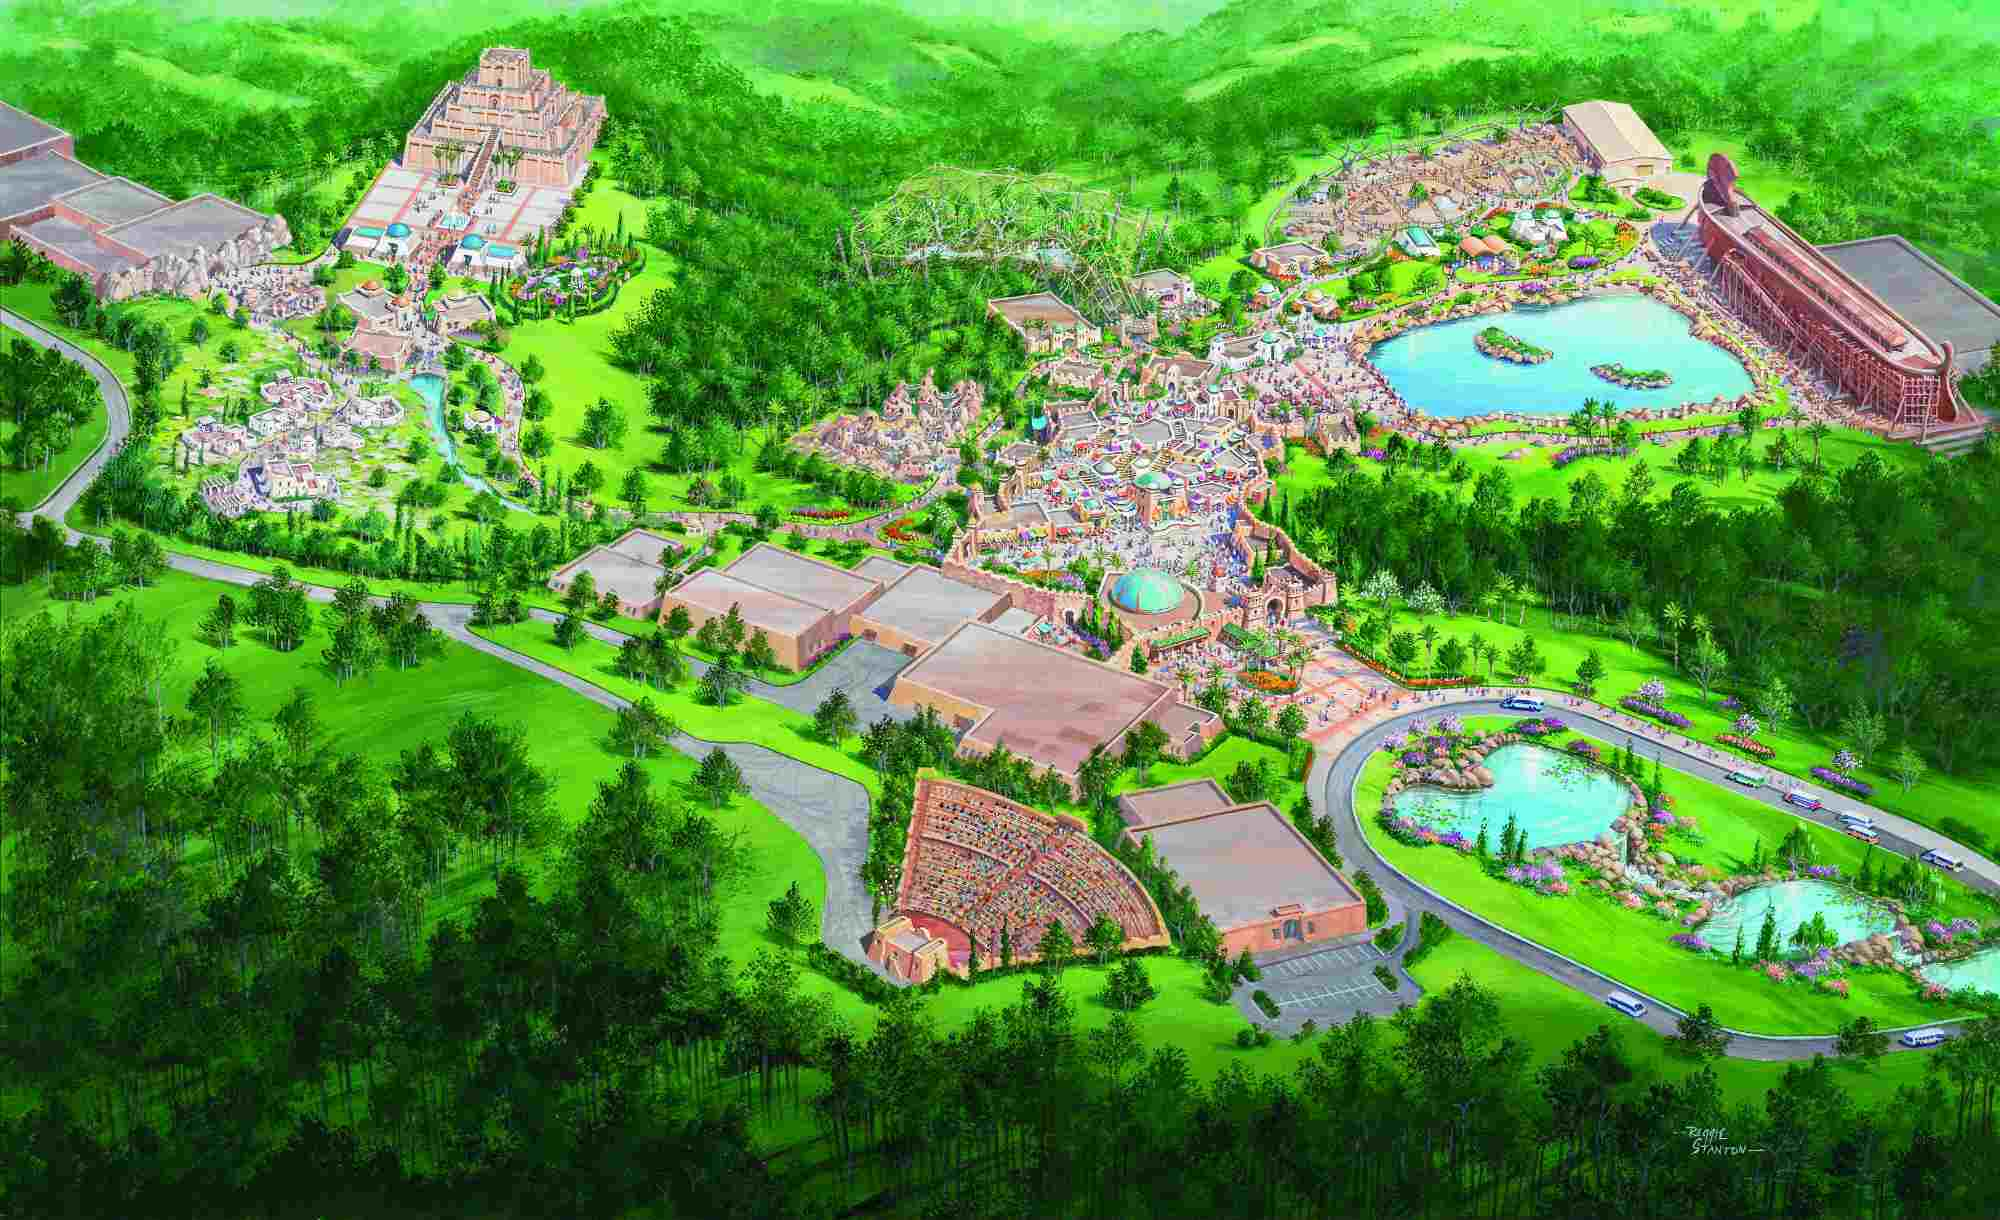 Future phases of Ark Encounter park.